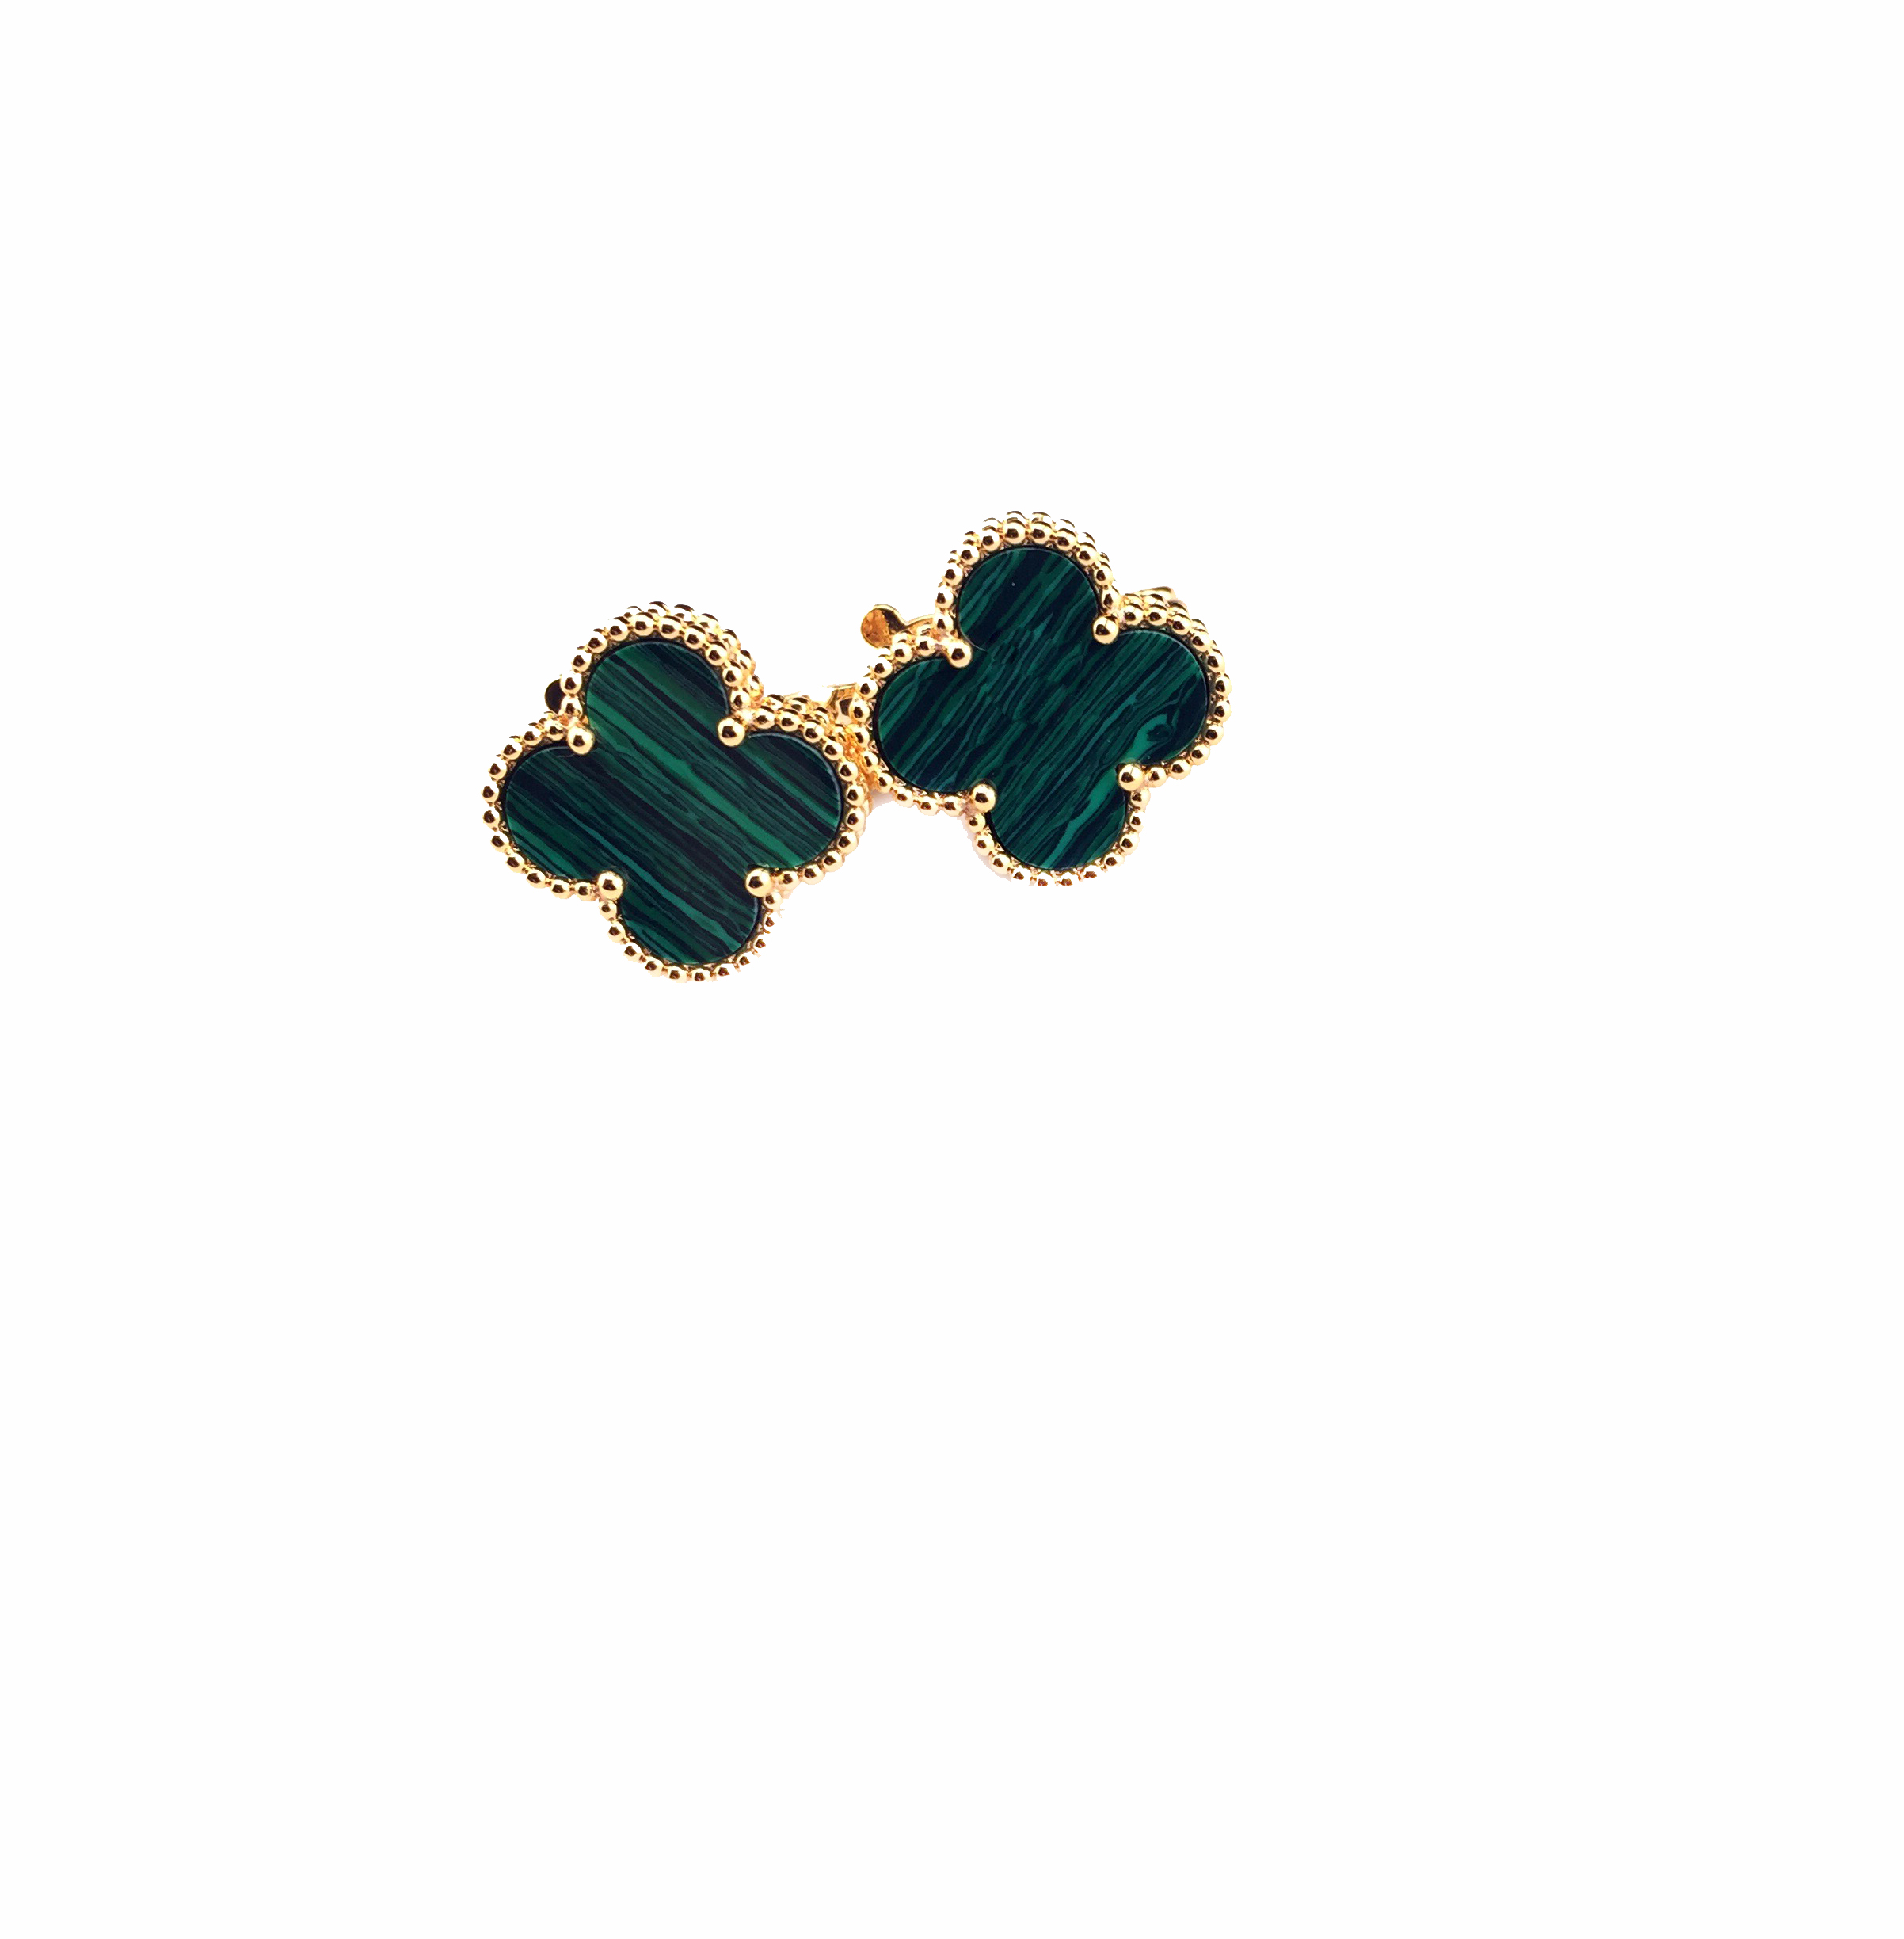 18k Gold Plated Clover Earrings With Green Malachite Inspired